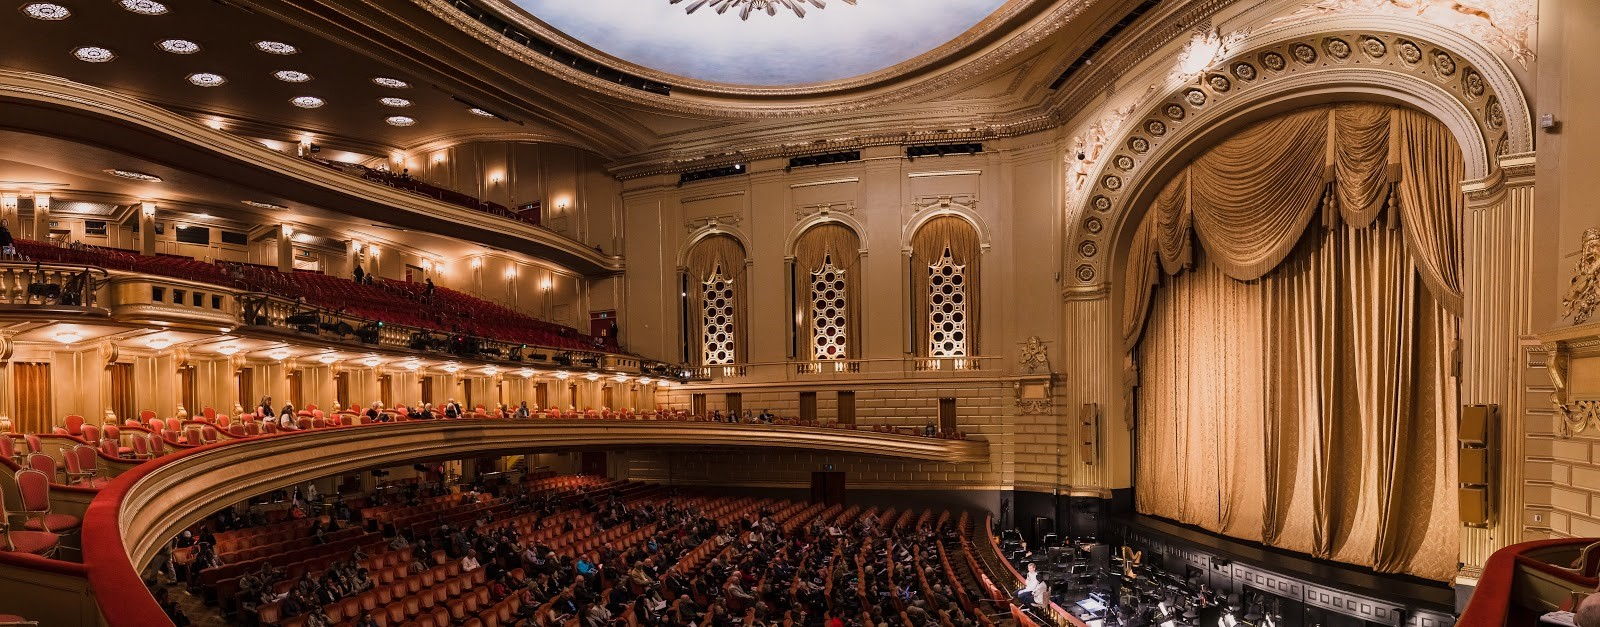 San Francisco Ballet And San Francisco Opera Announce Final With Oc Performing Arts Schedule